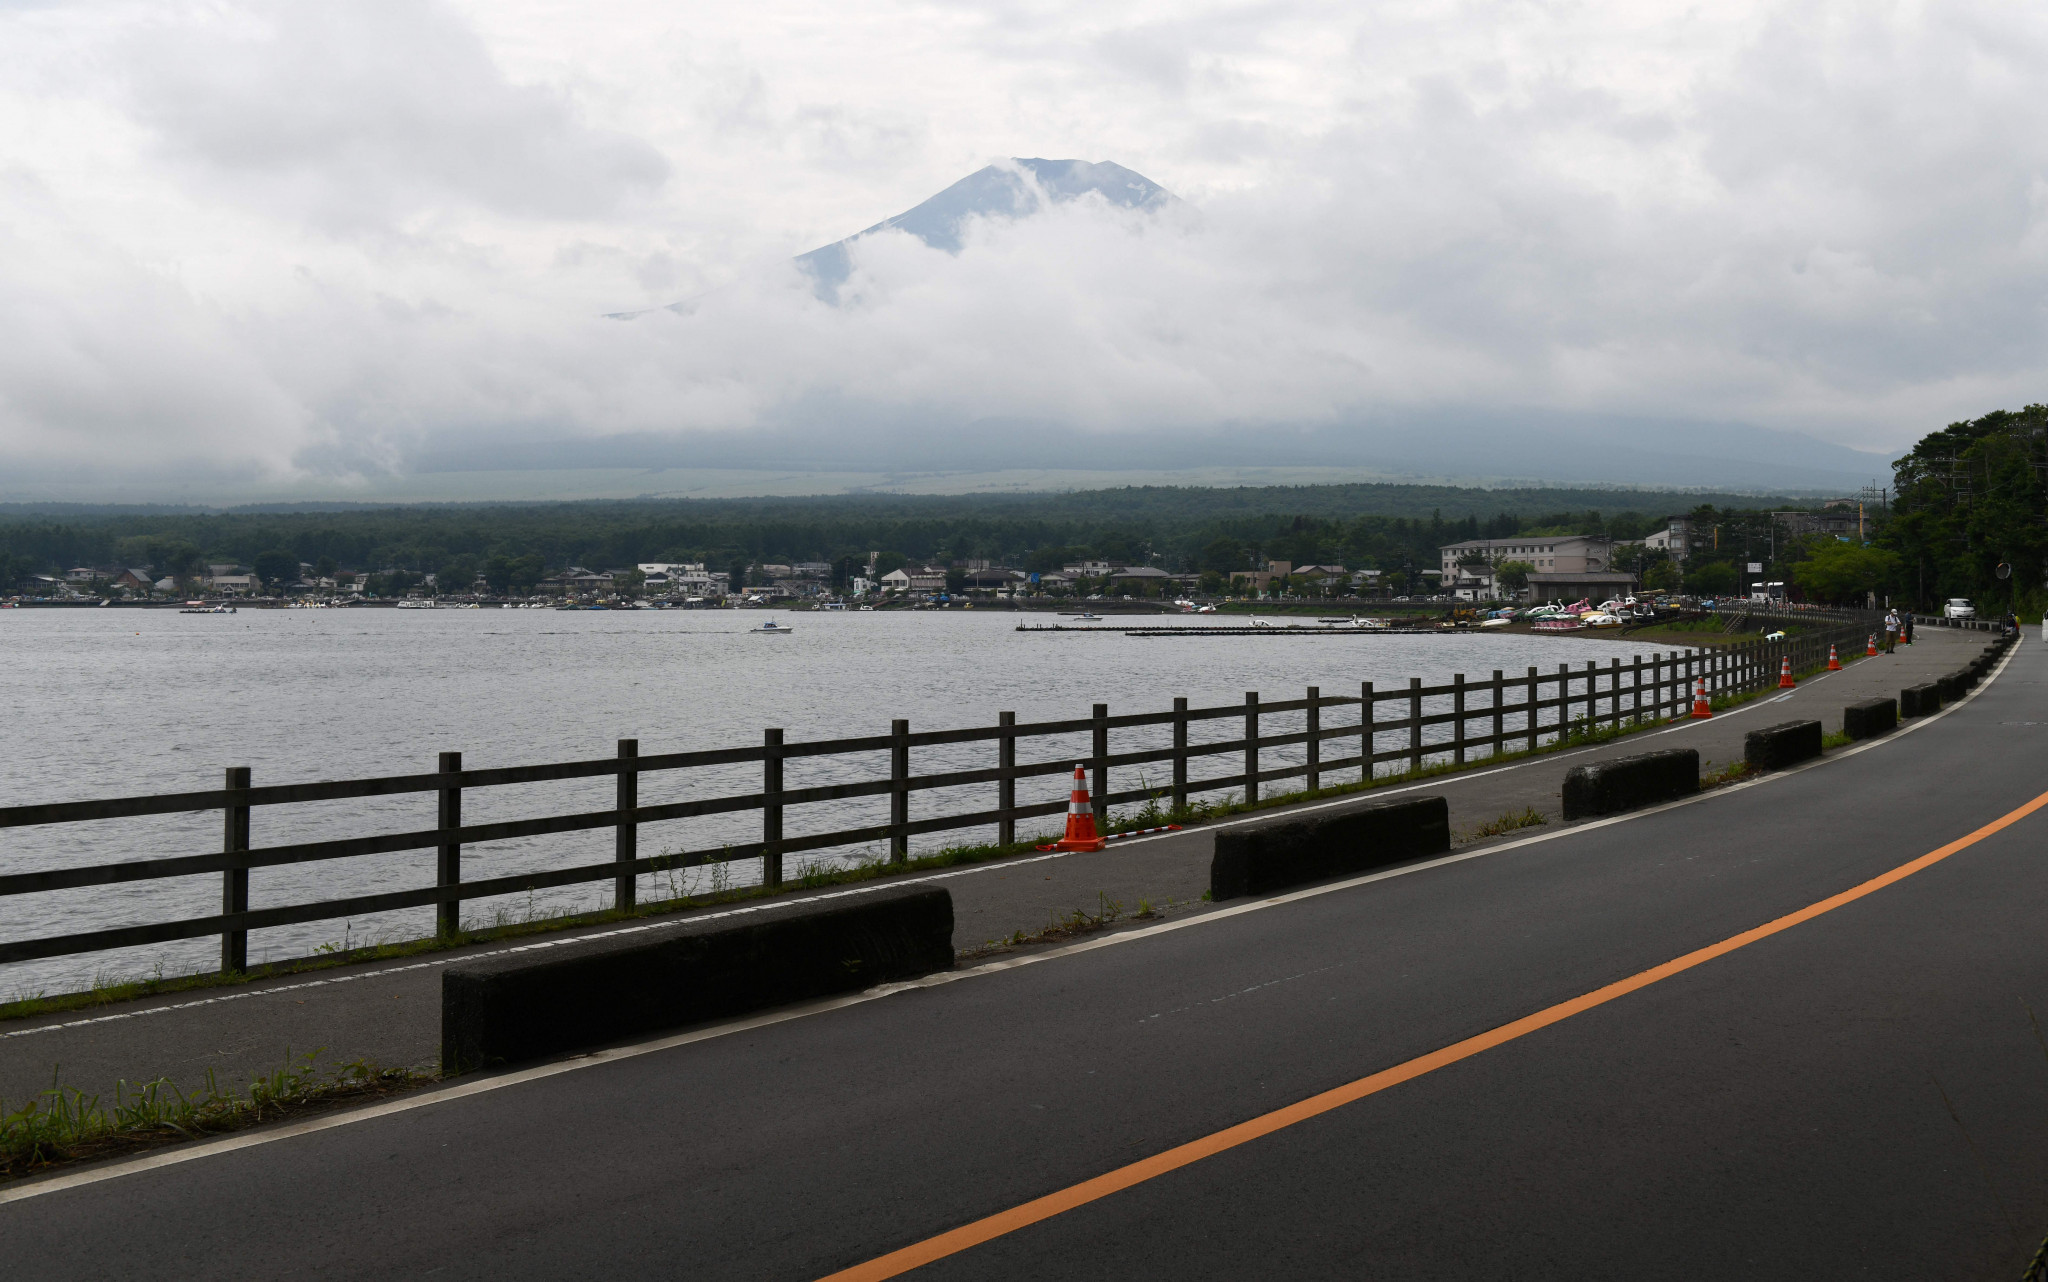 Mount Fuji awaits in the men's Olympic road race ©Getty Images